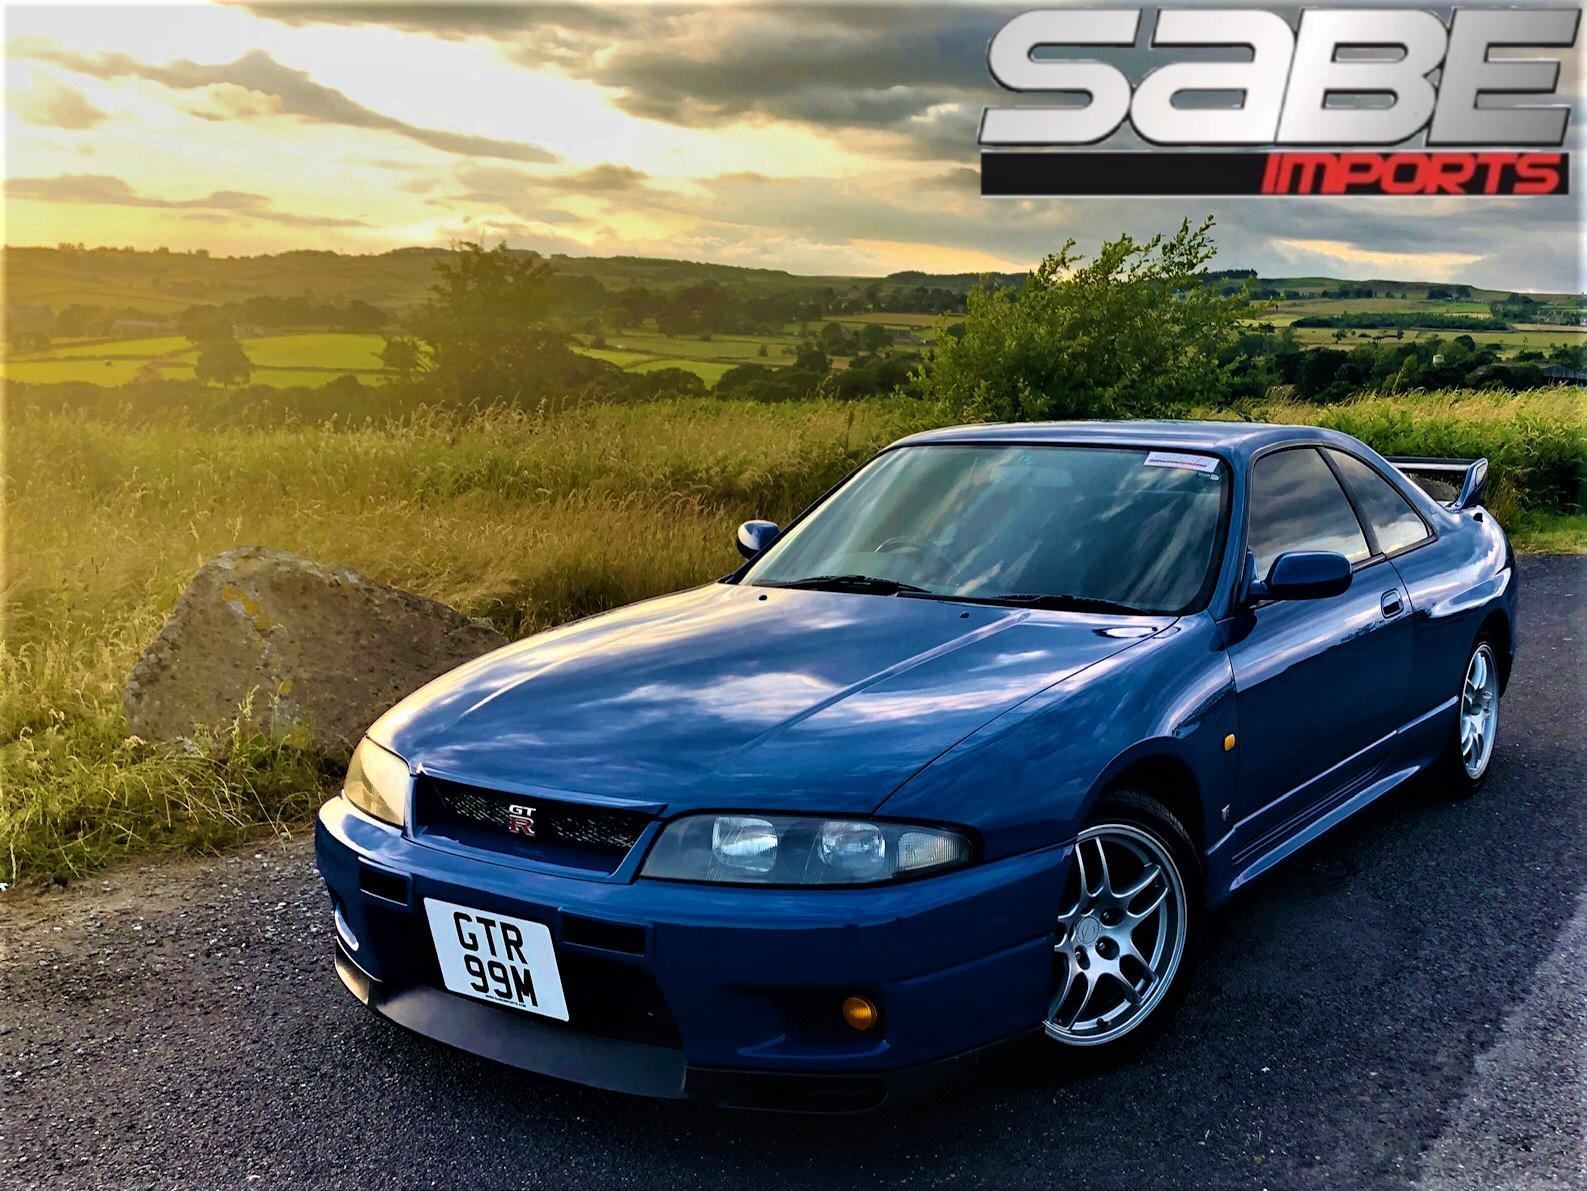 1996 Skyline GTR LM Edition V-Spec Excellent Investment For Sale (picture 2 of 6)